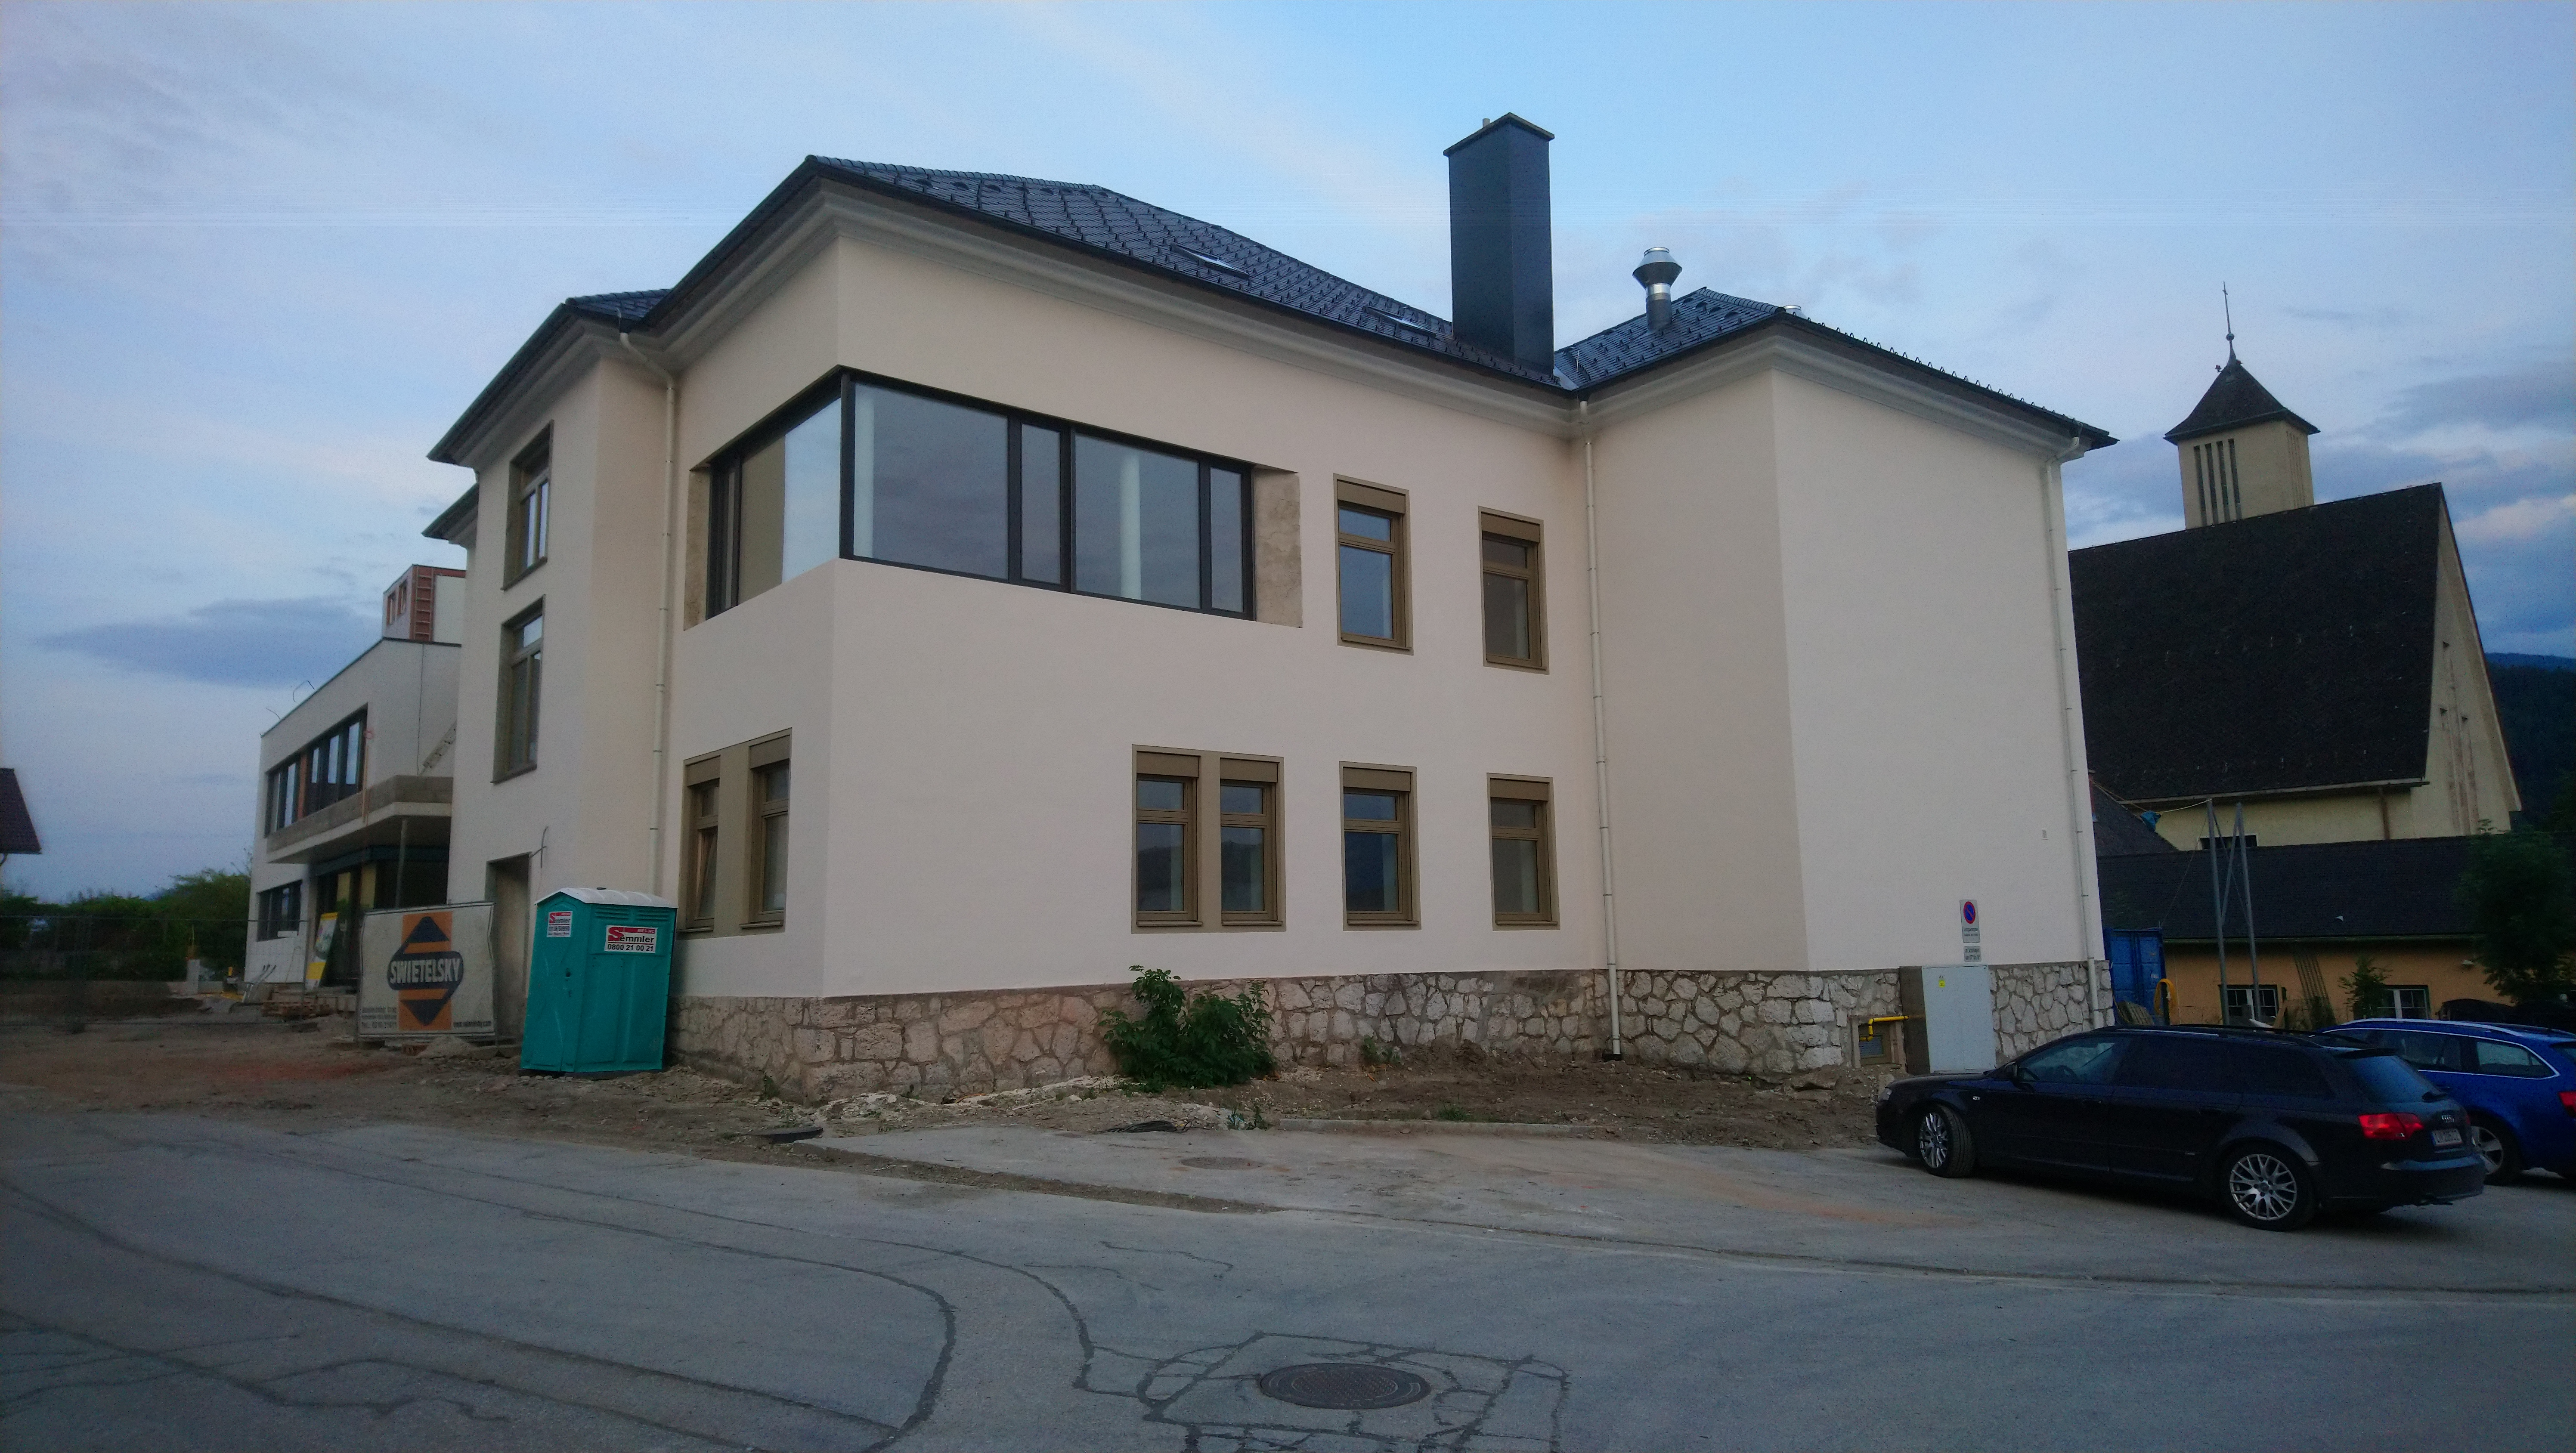 Volksschule Stainach-Pürgg - Building construction